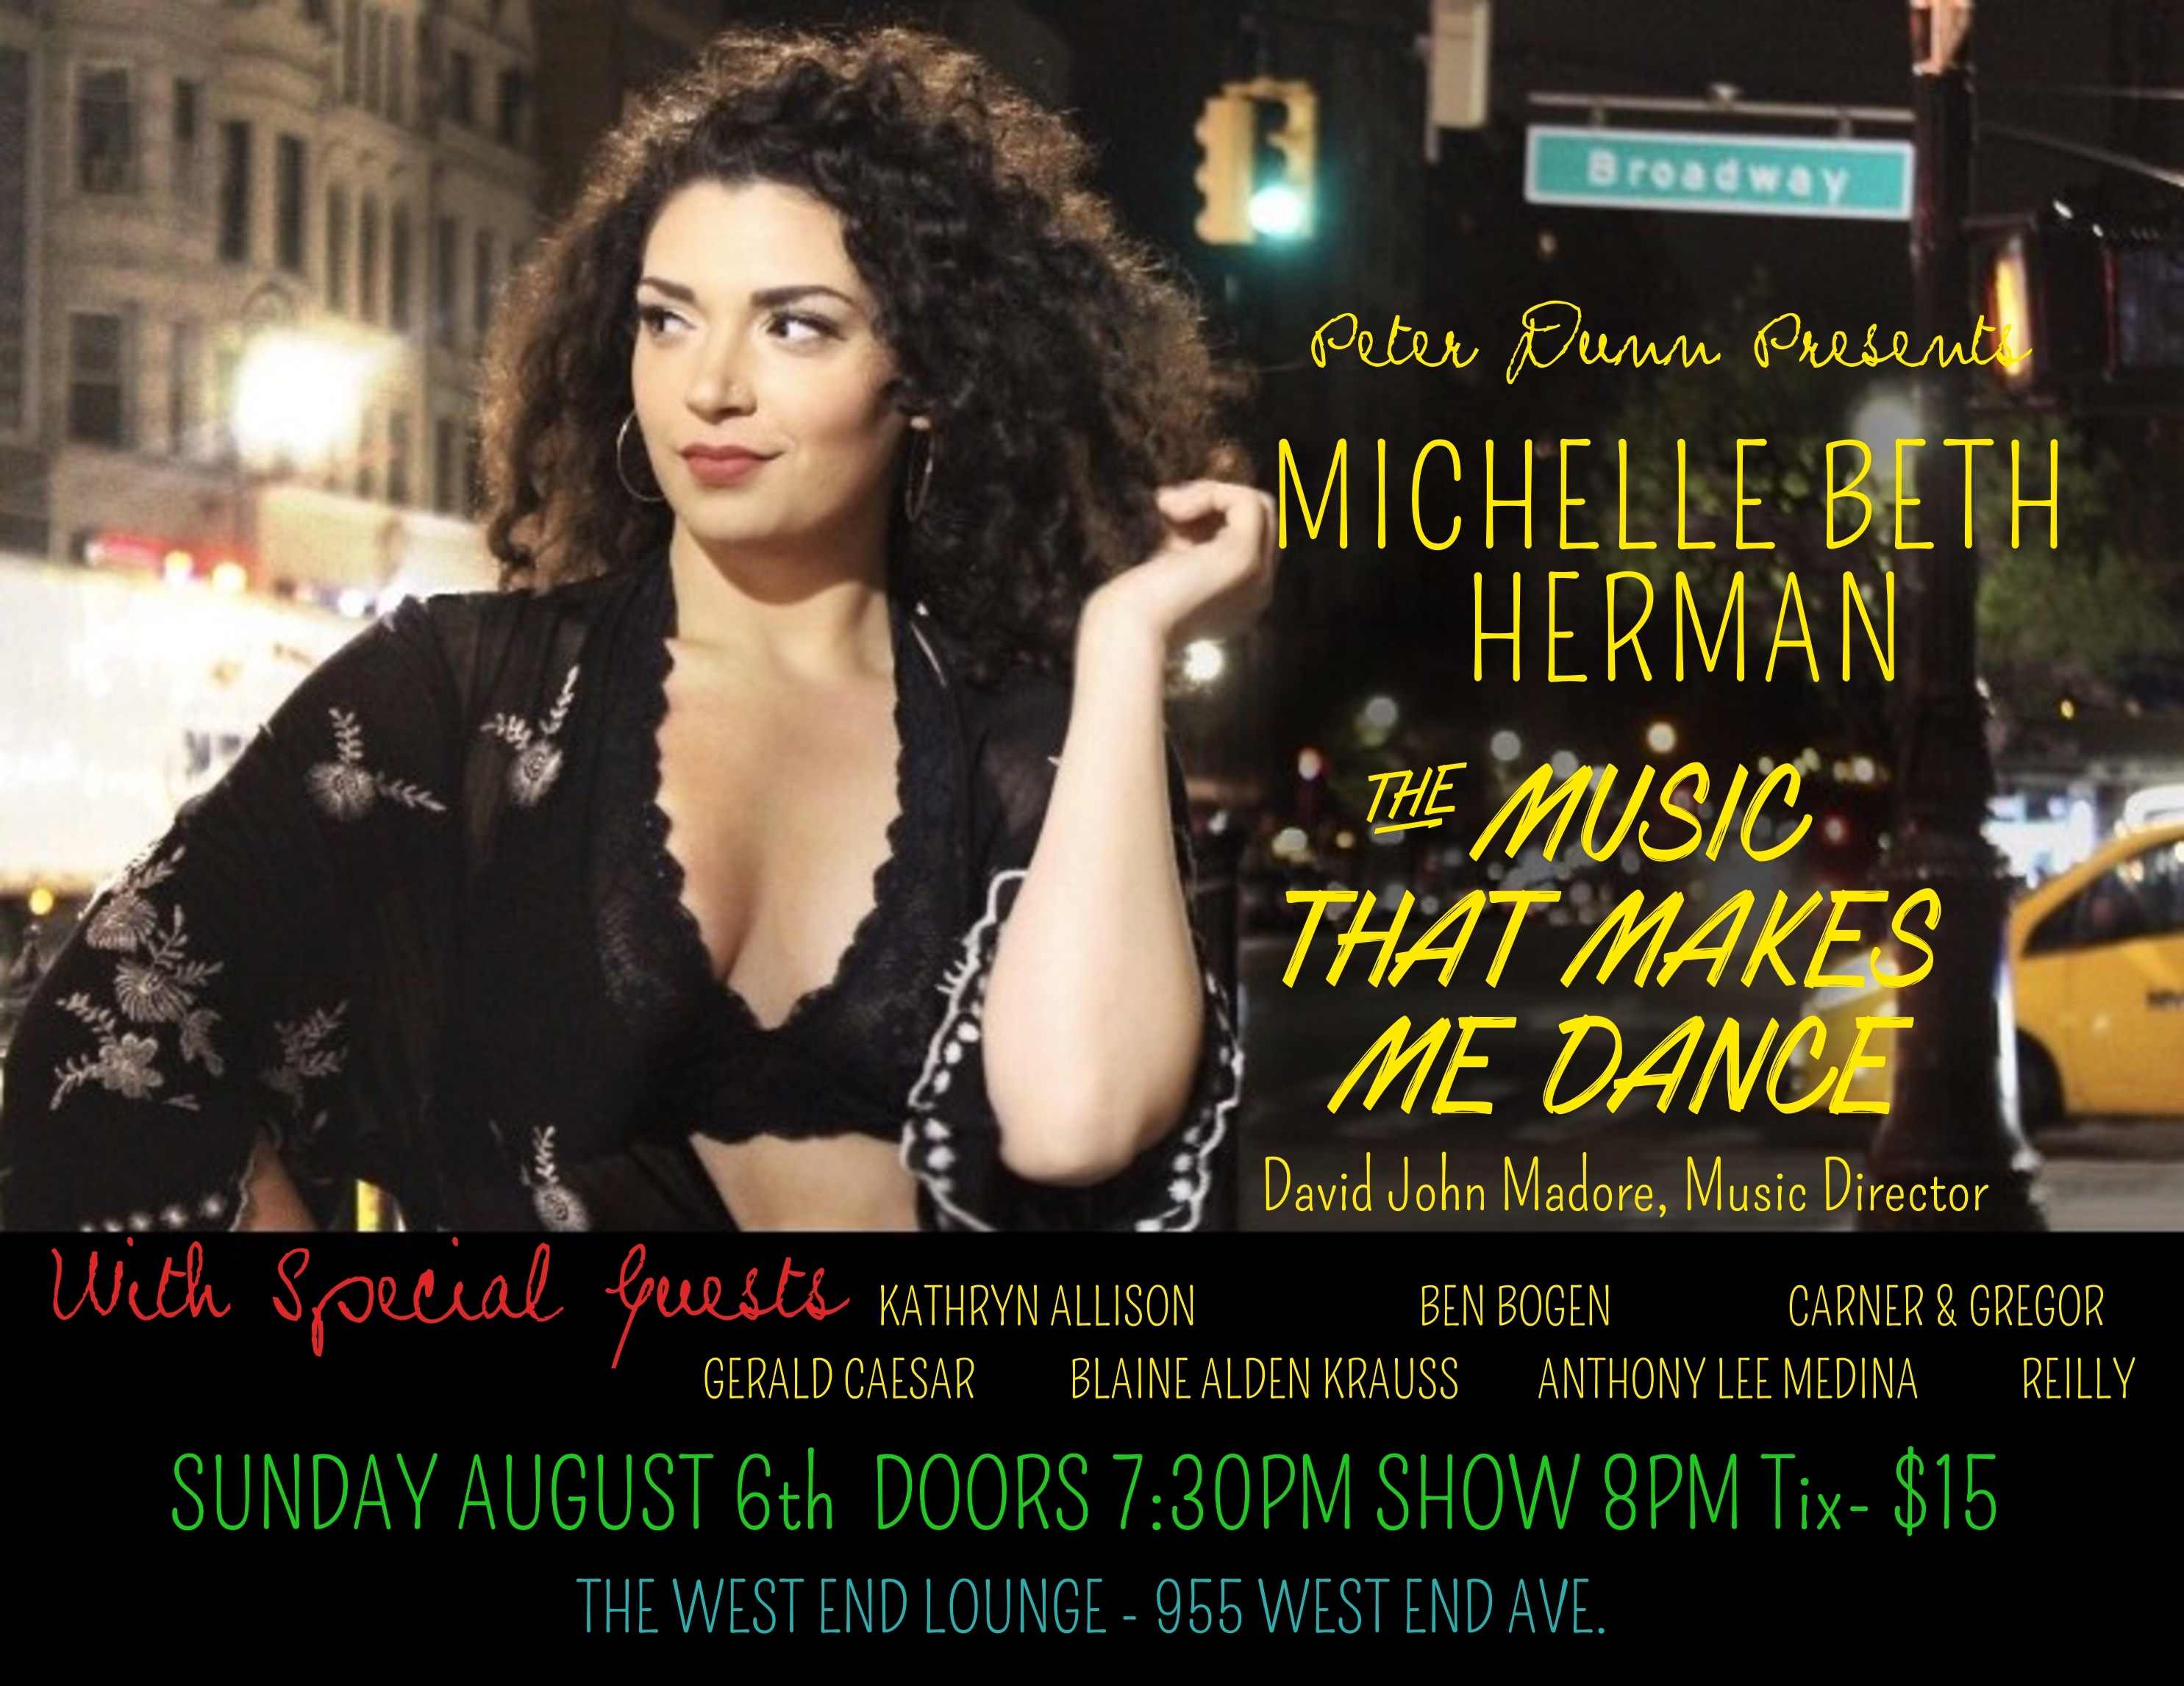 Michelle Beth Herman Takes The Stage In Her Solo Cabaret Debut with Special Guests from ALADDIN, A BRONX TALE, HAMILTON and THE GREAT COMET